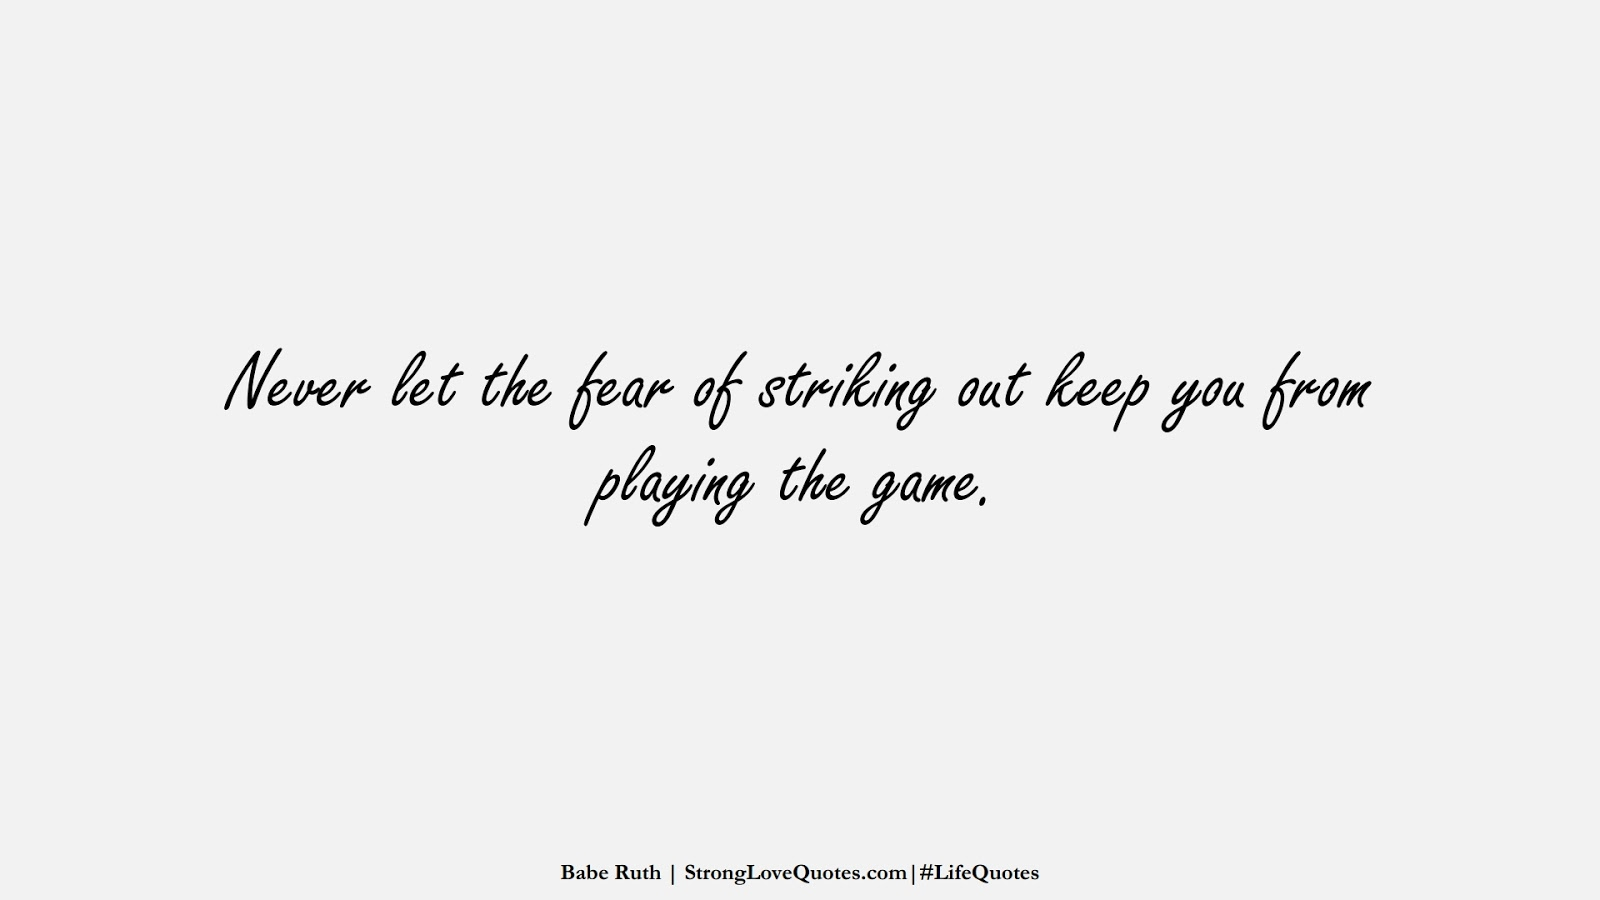 Never let the fear of striking out keep you from playing the game. (Babe Ruth);  #LifeQuotes